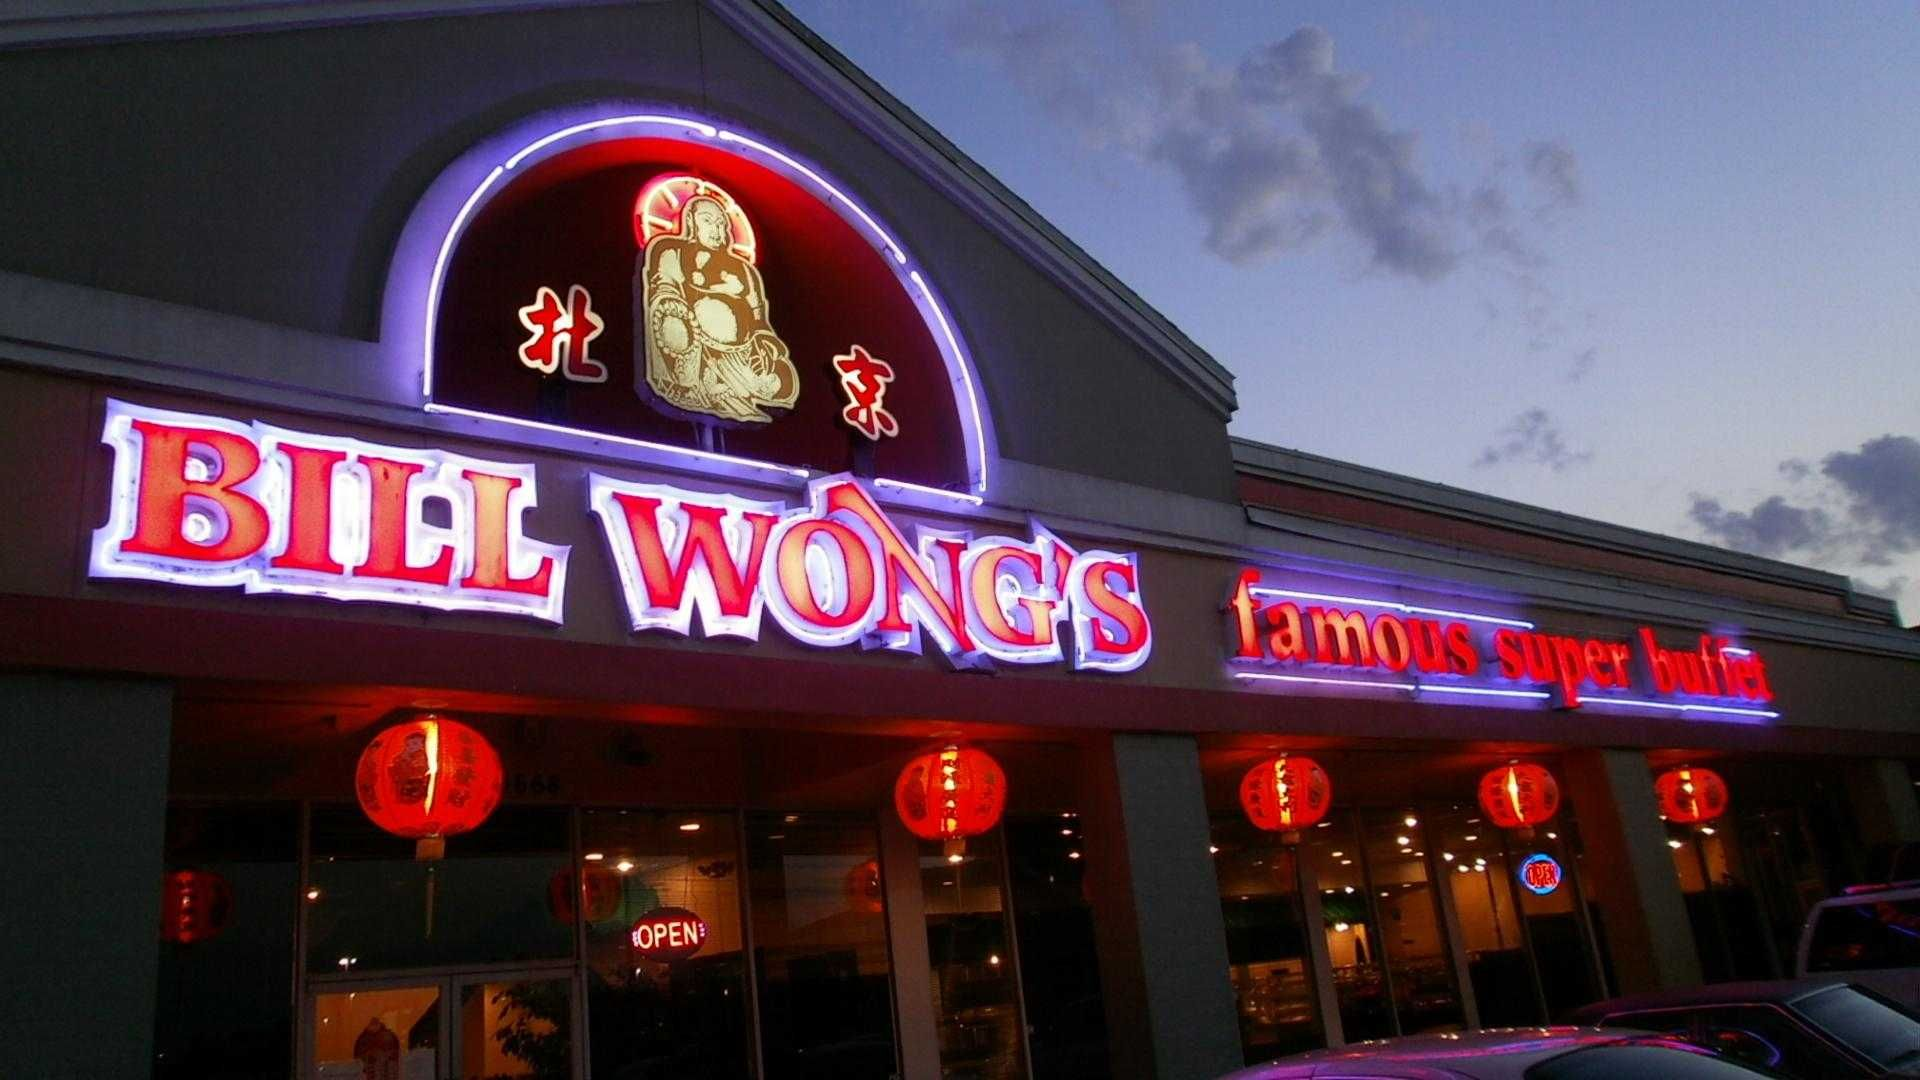 bill wongs famous super buffet, 5668 international drive, (407